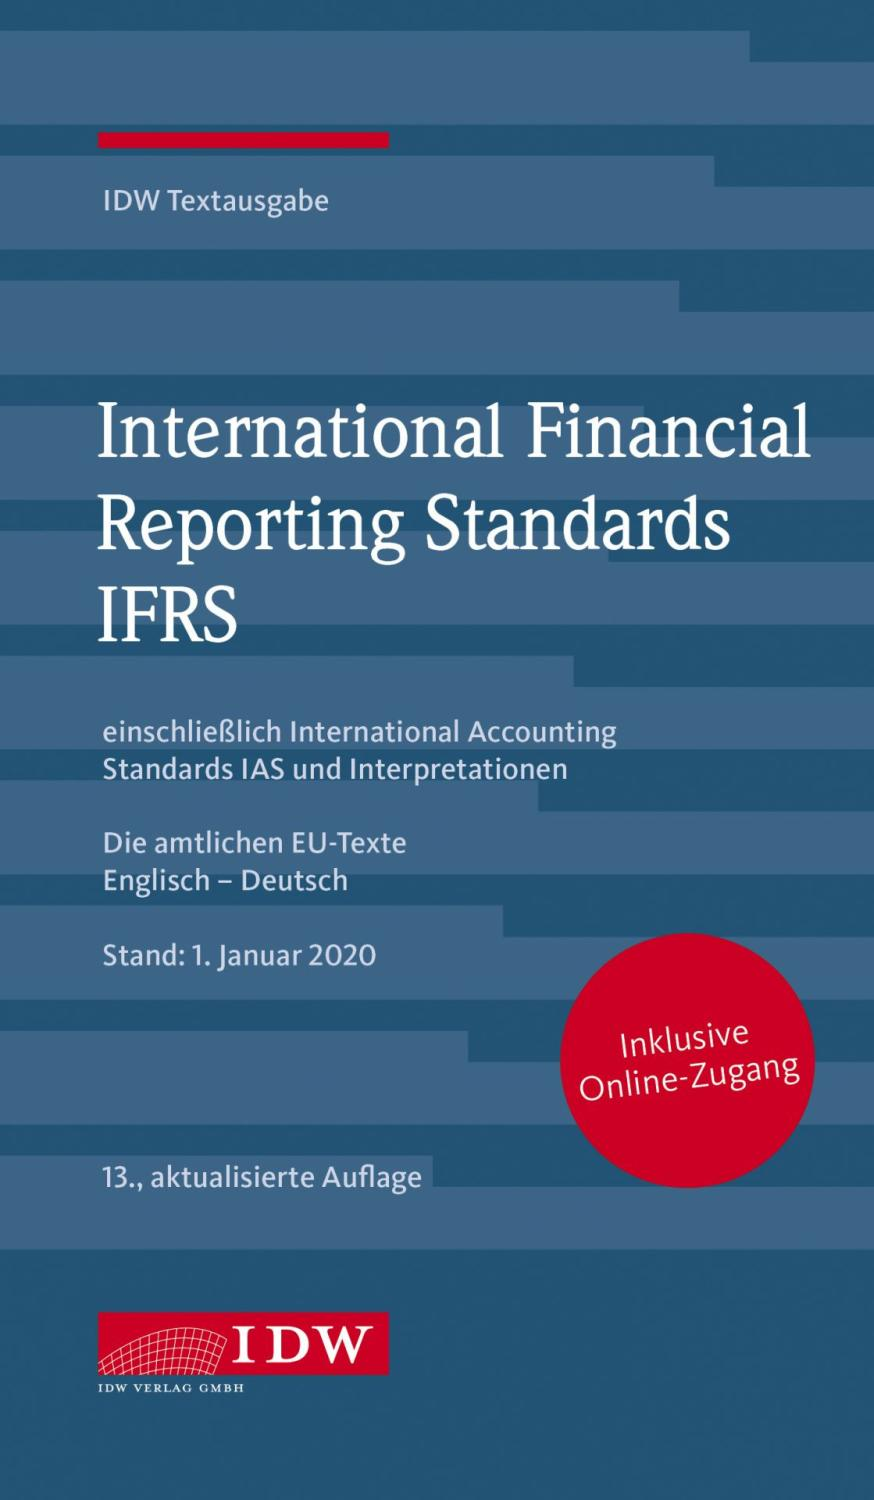 International Financial Reporting Standards IFRS 2021